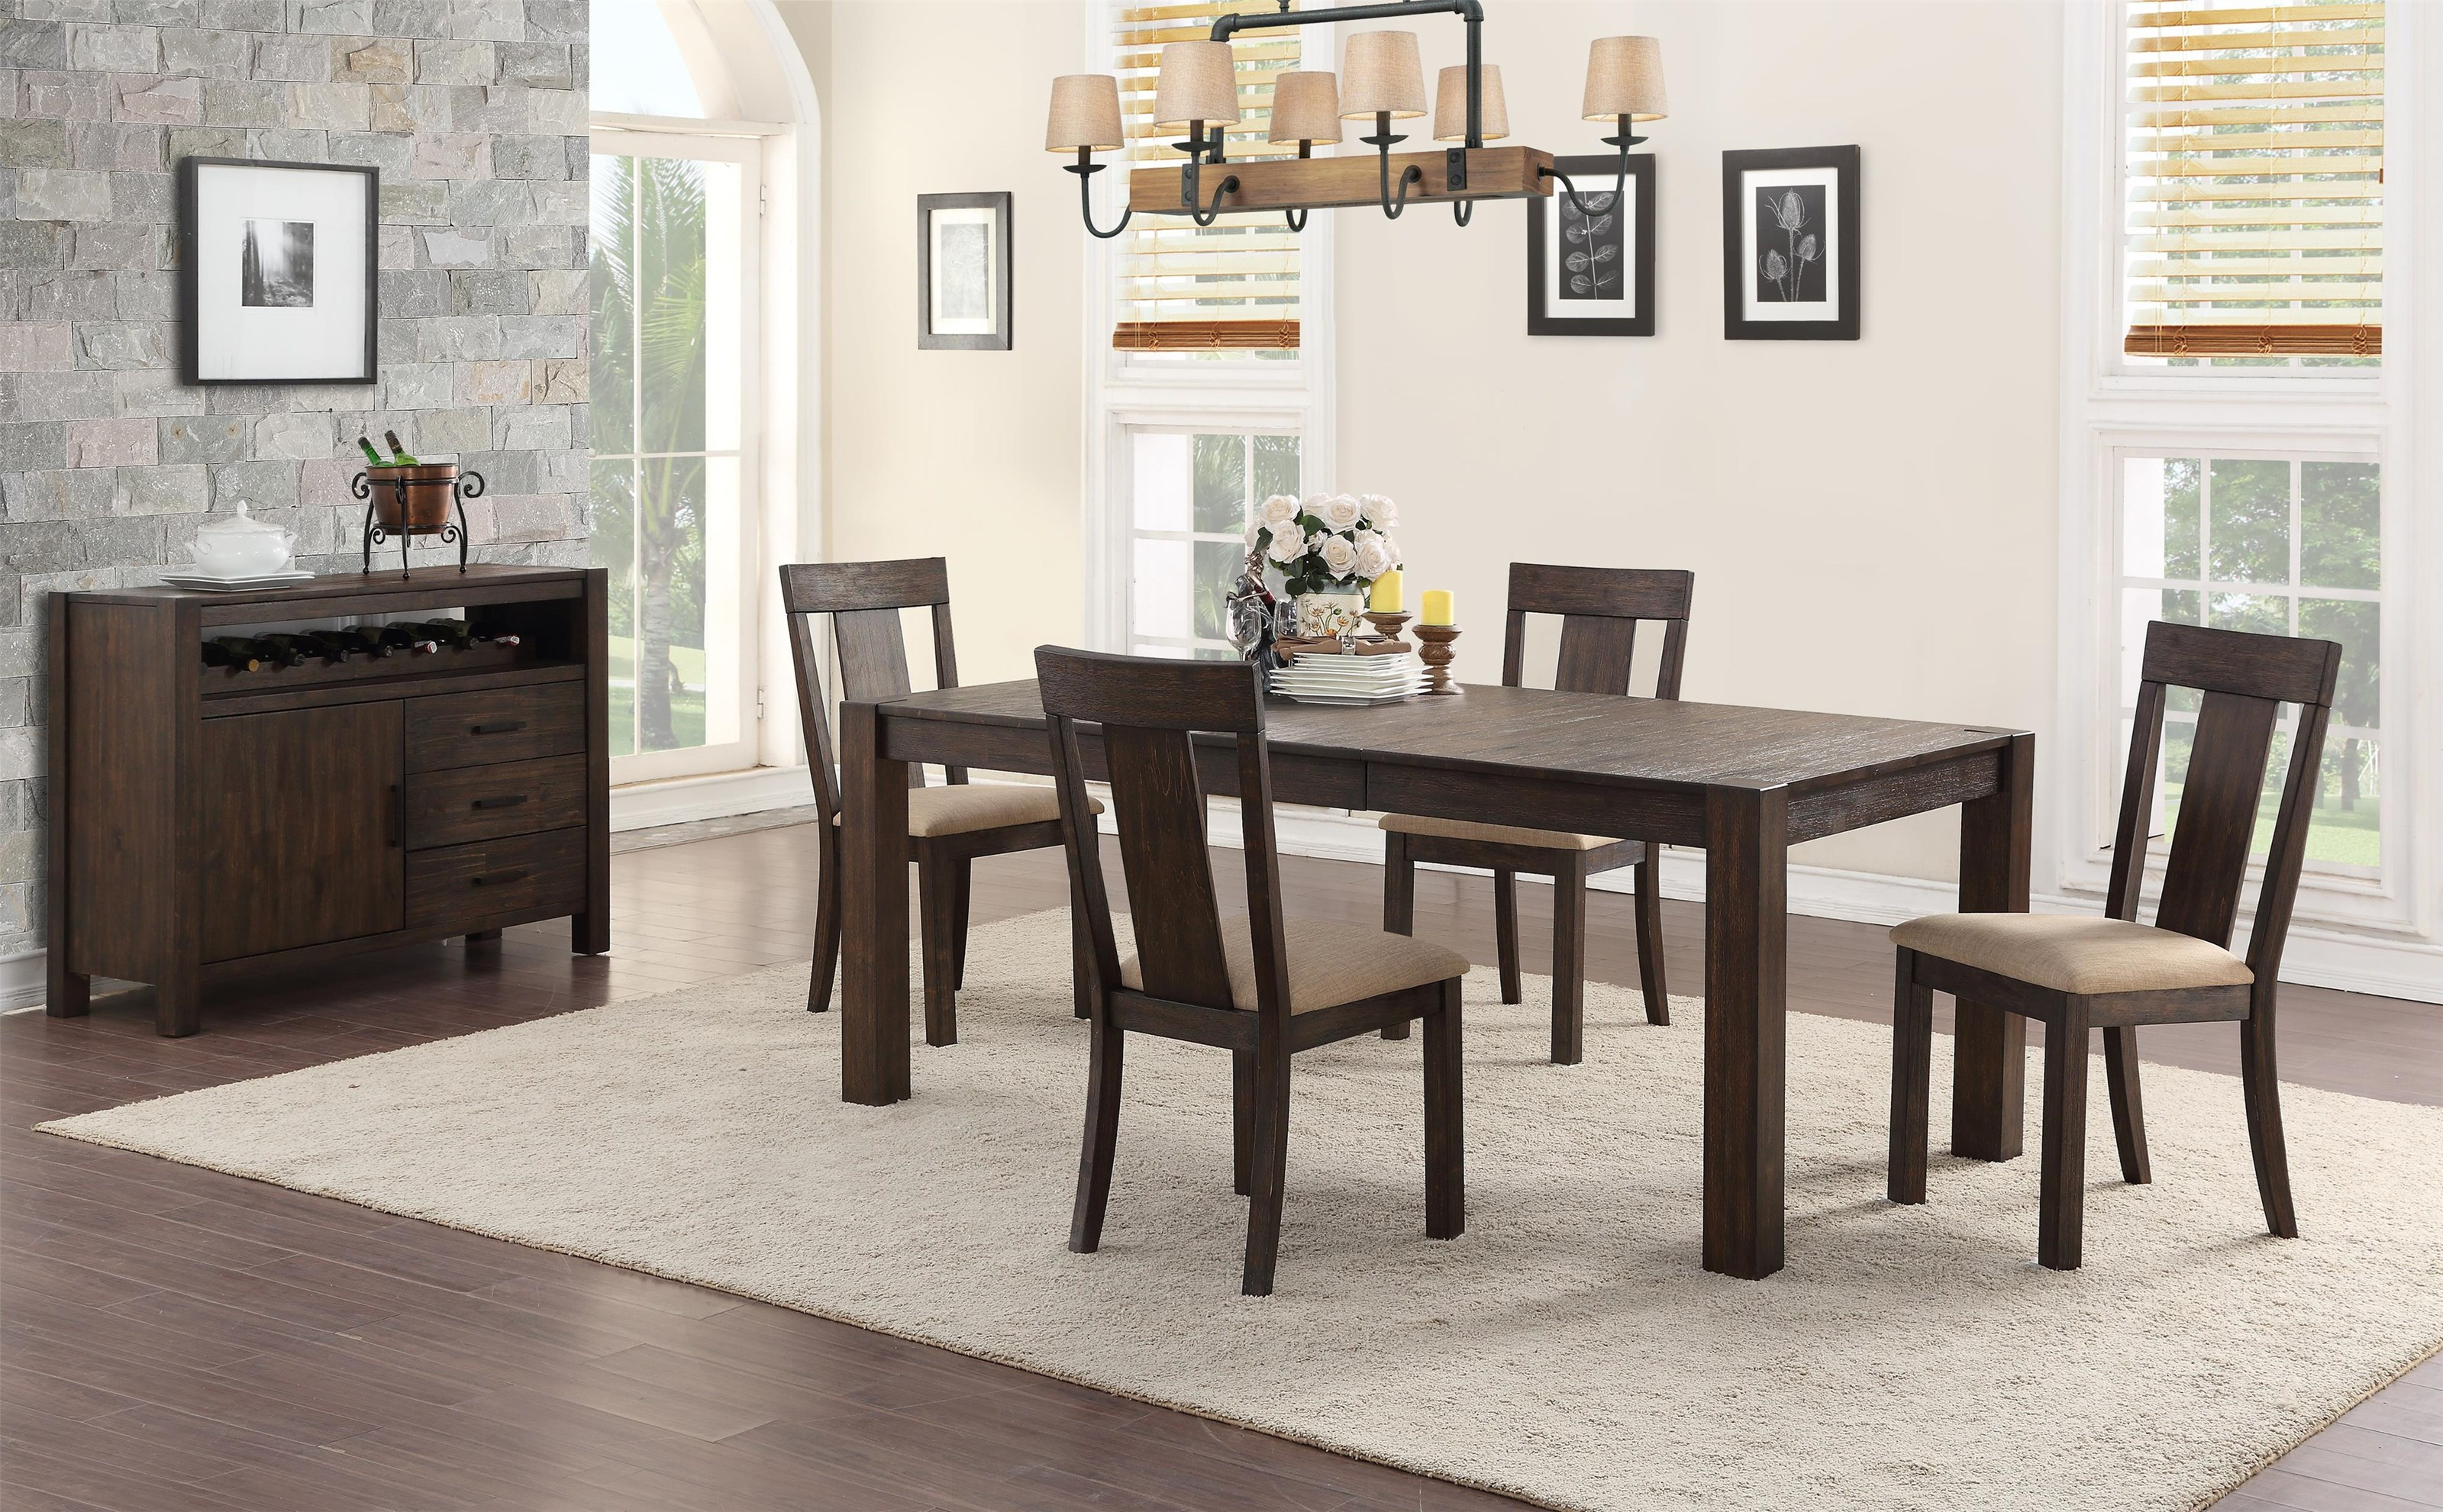 Tyler Table + 4 Chairs by HH at Walker's Furniture